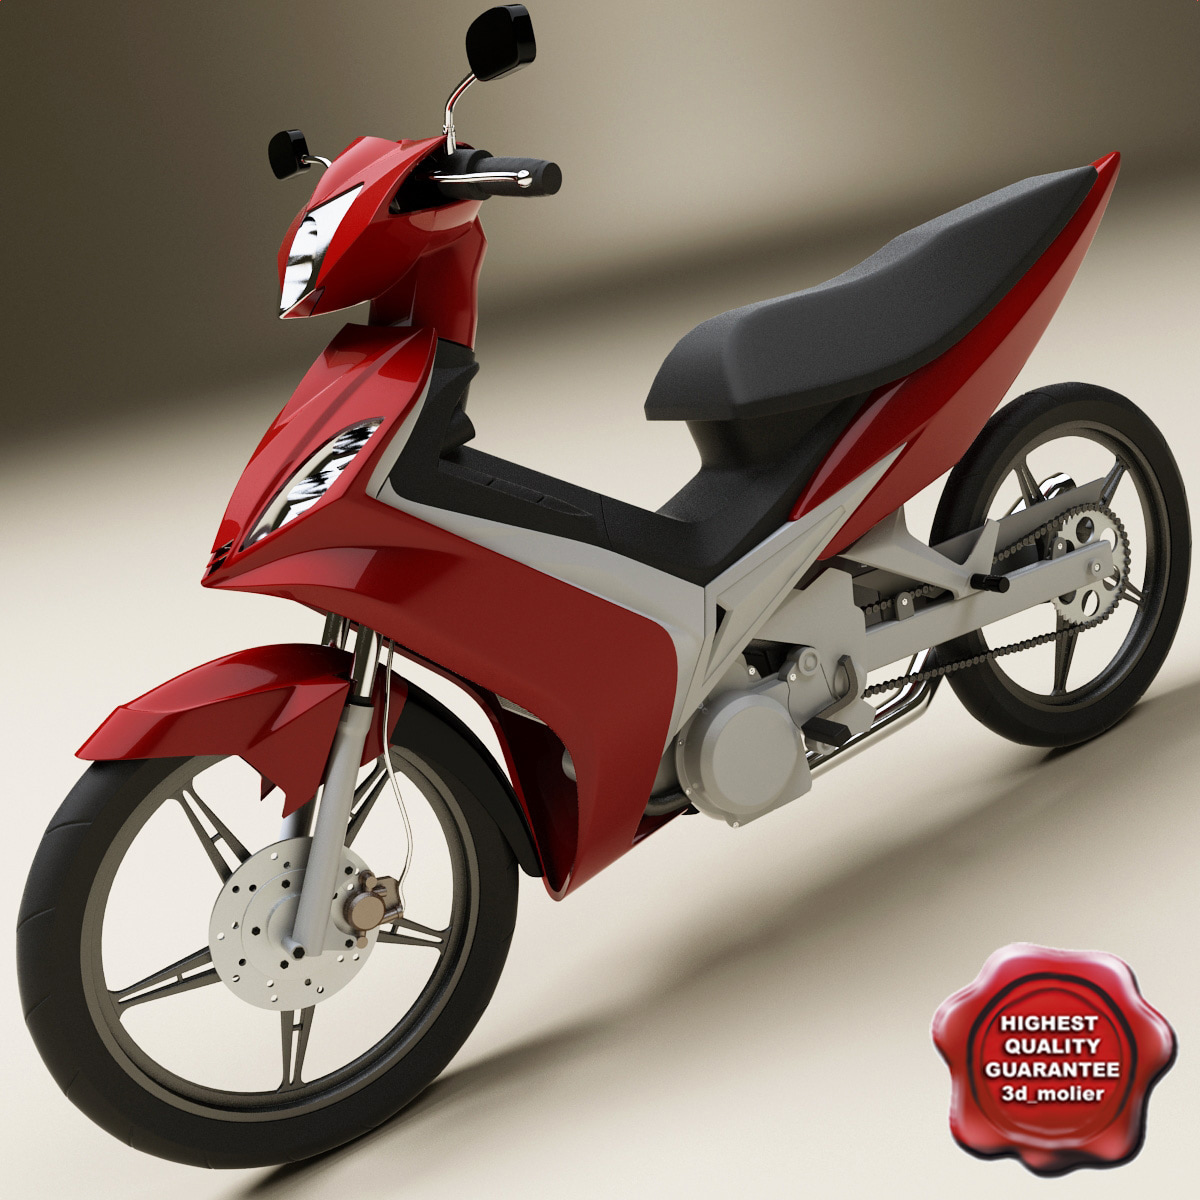 xsi motorcycle yamaha jupiter mx